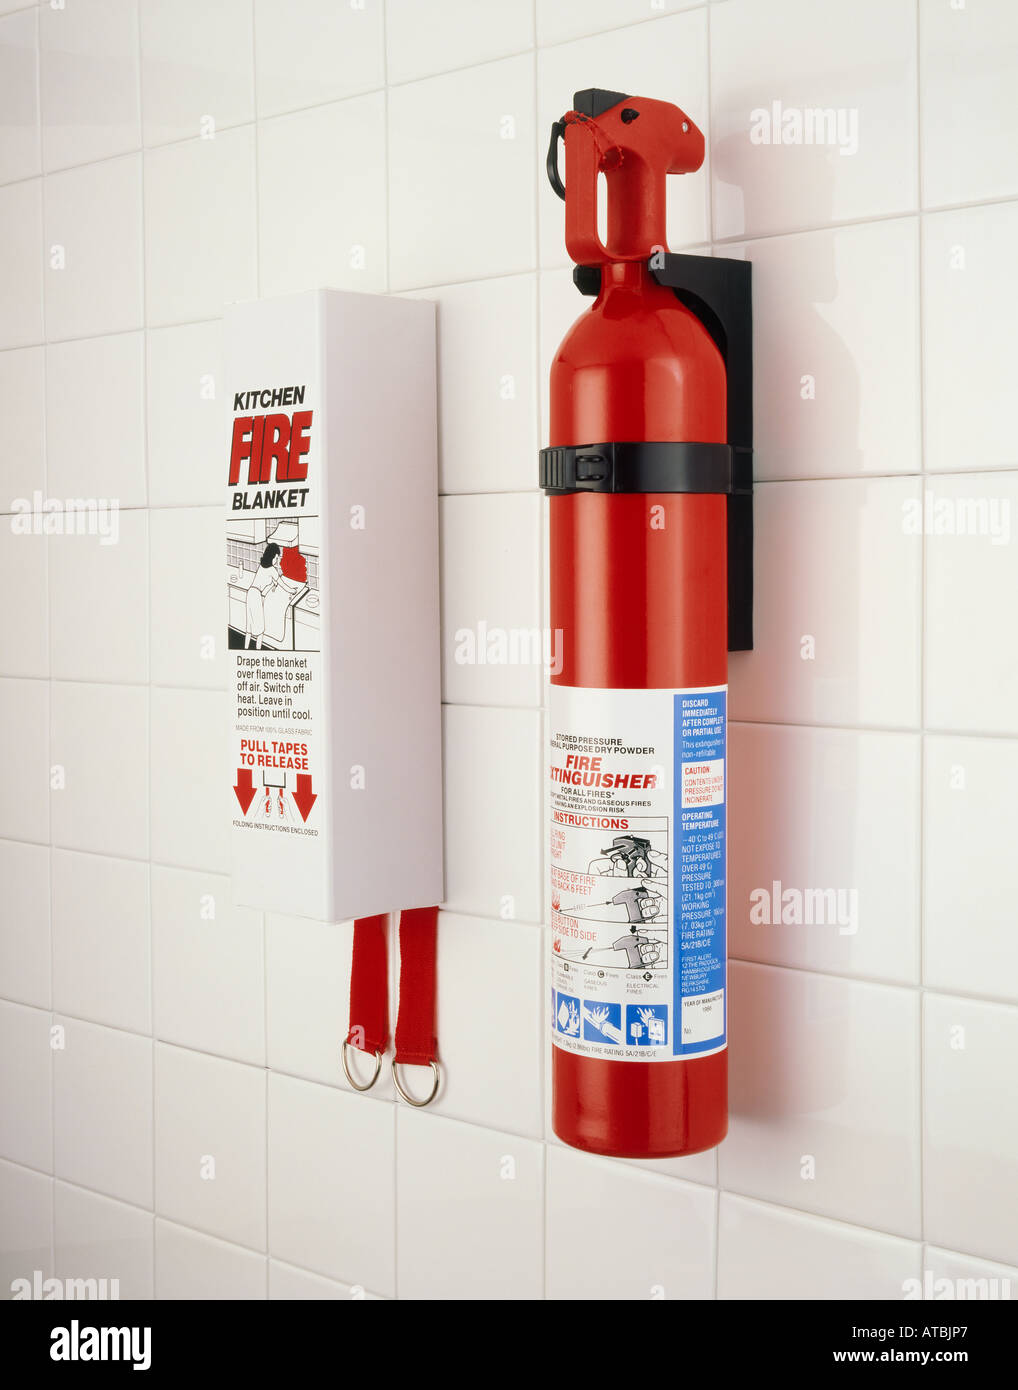 supression extinguisher program kitchen inspection mutual commercial suppression red from safety system river fire prevention tips loss